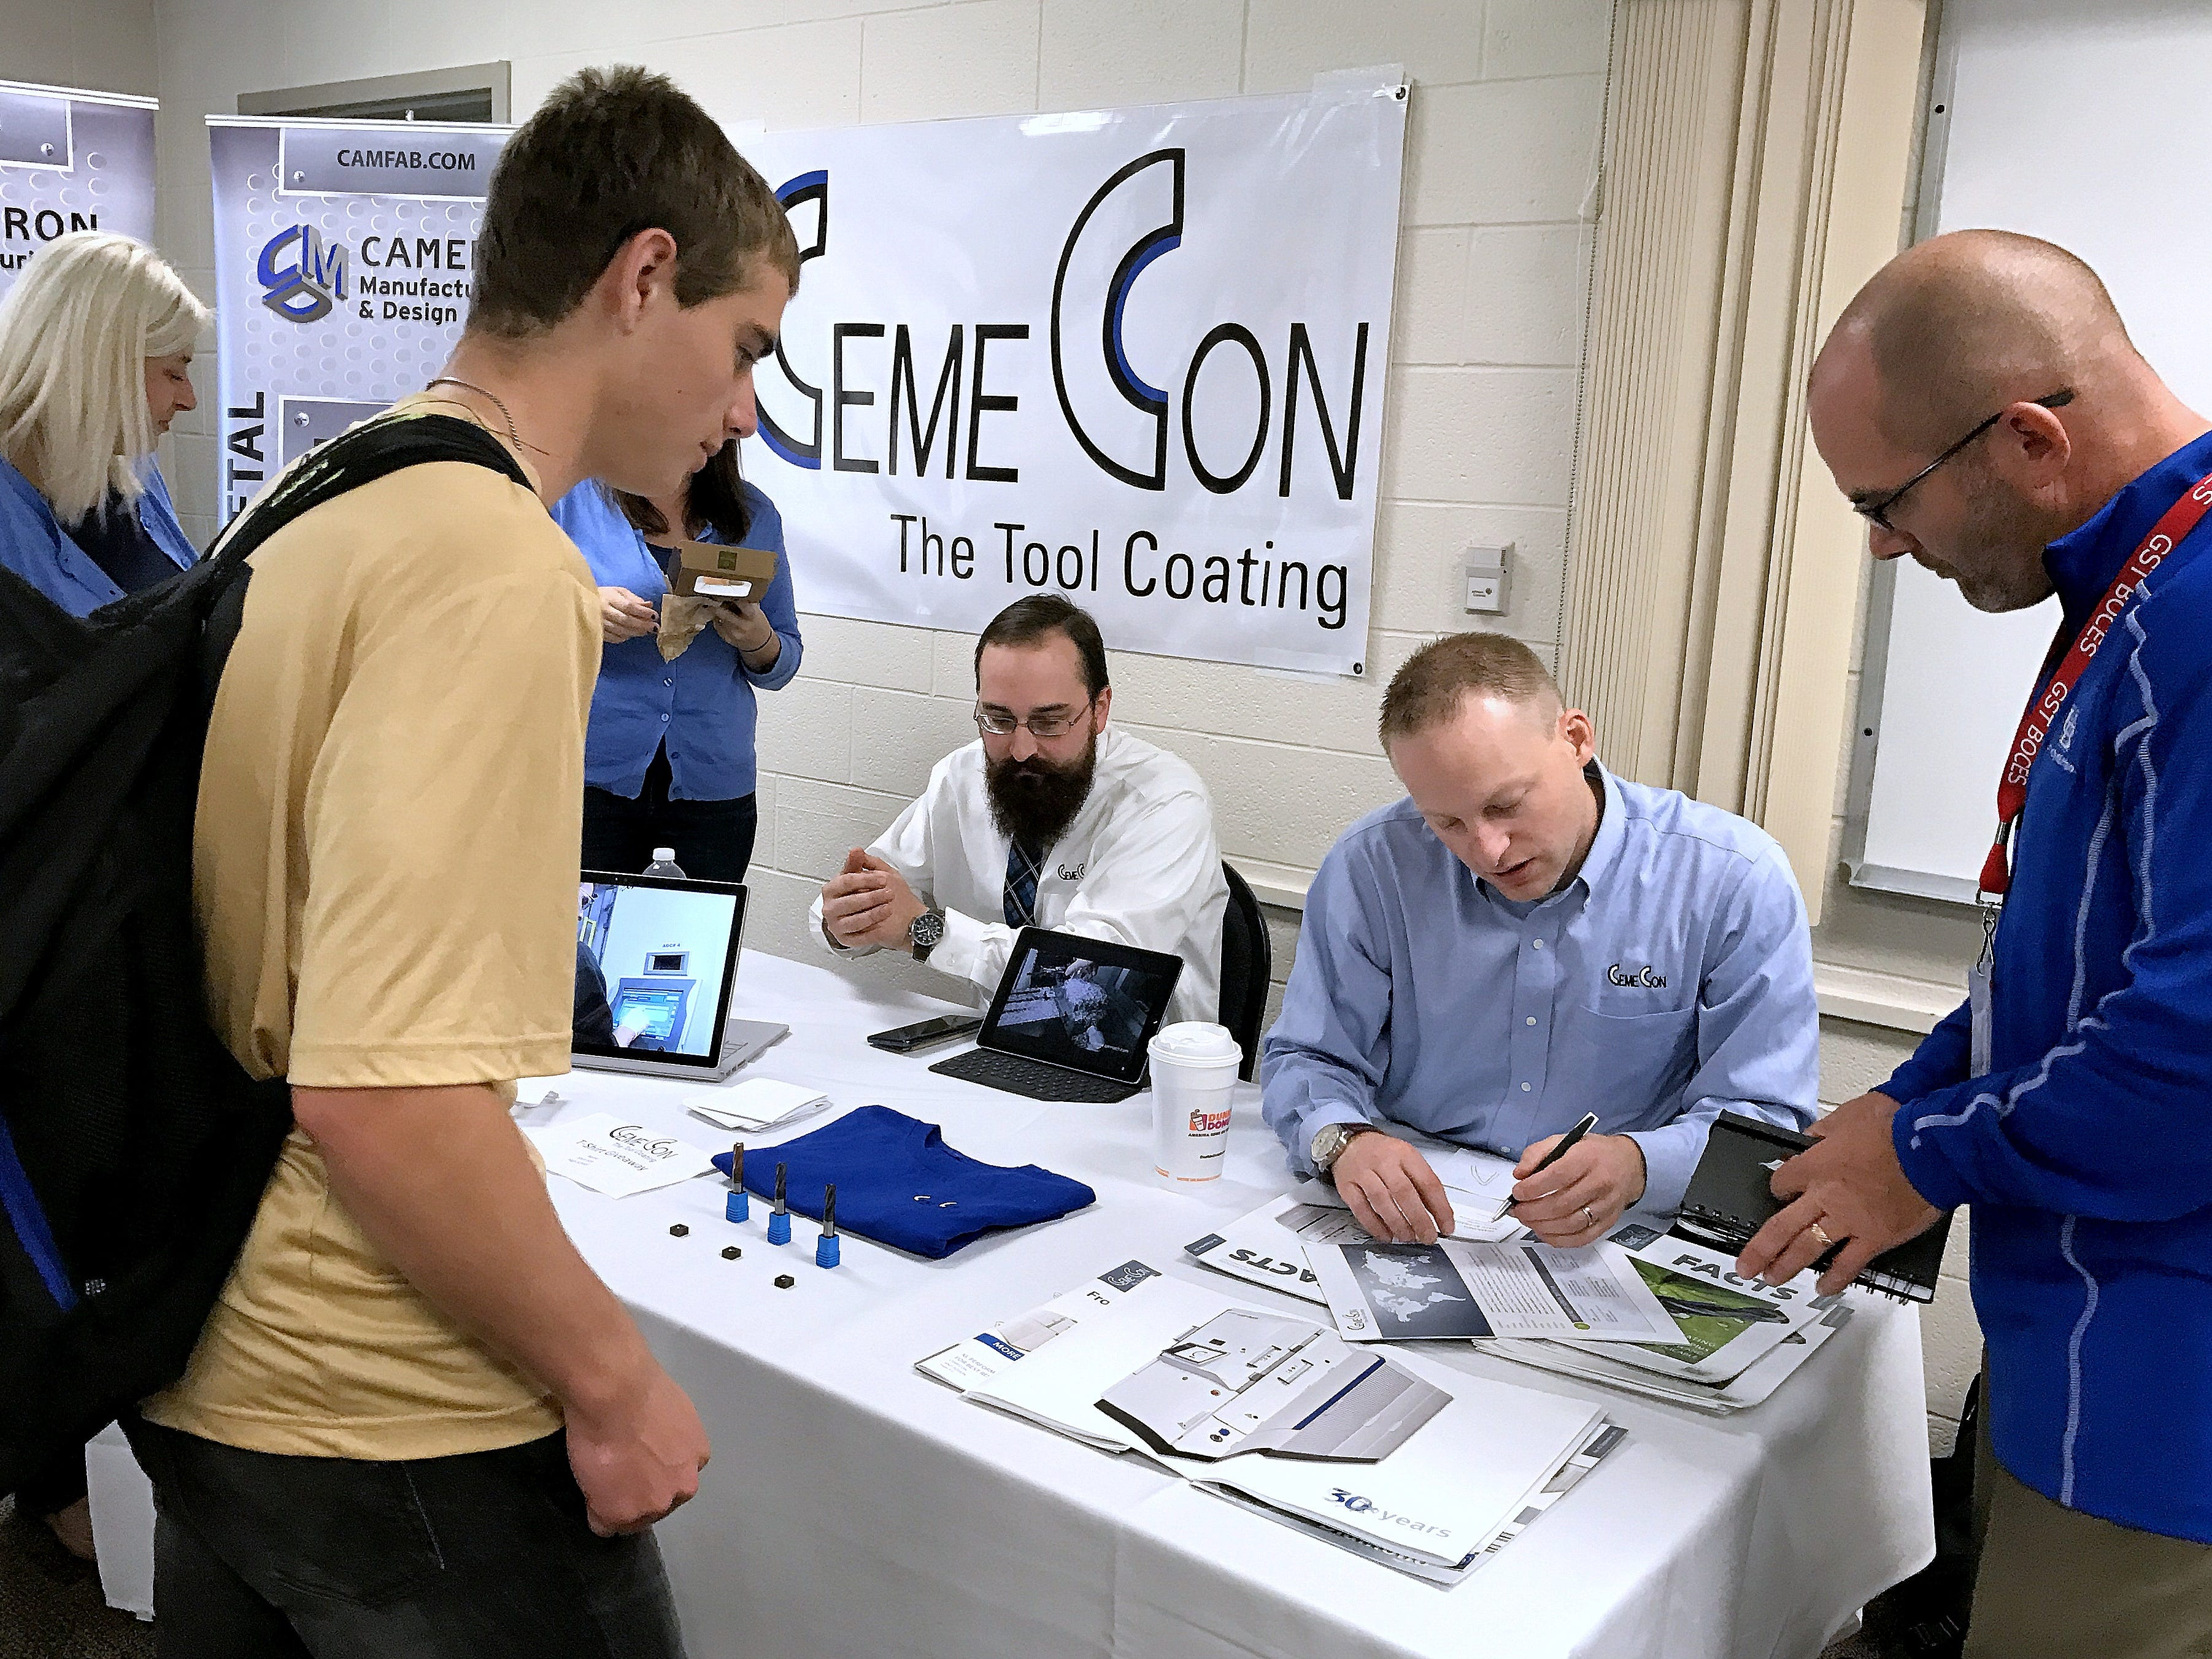 Representatives from CemeCon in Big Flats talk about the process they use to coat cutting tools to make them more durable during Manufacturing Day on Friday.